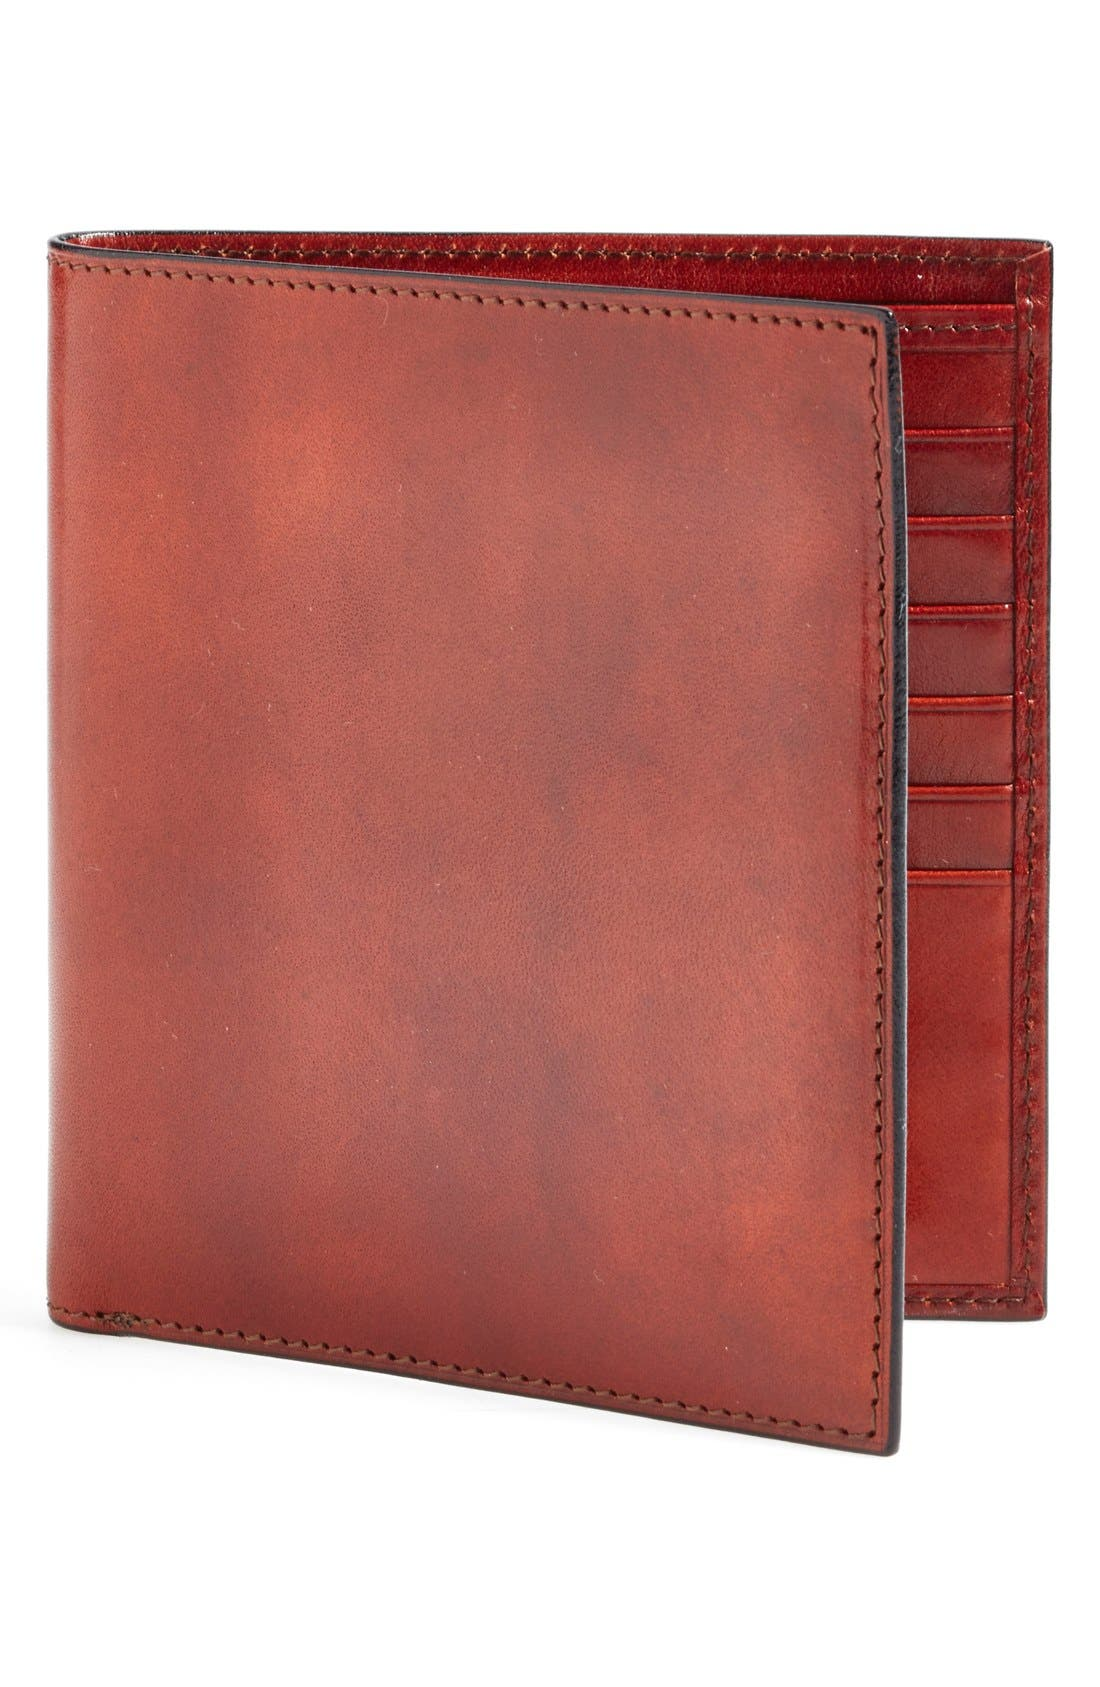 BOSCA Old Leather Credit Wallet